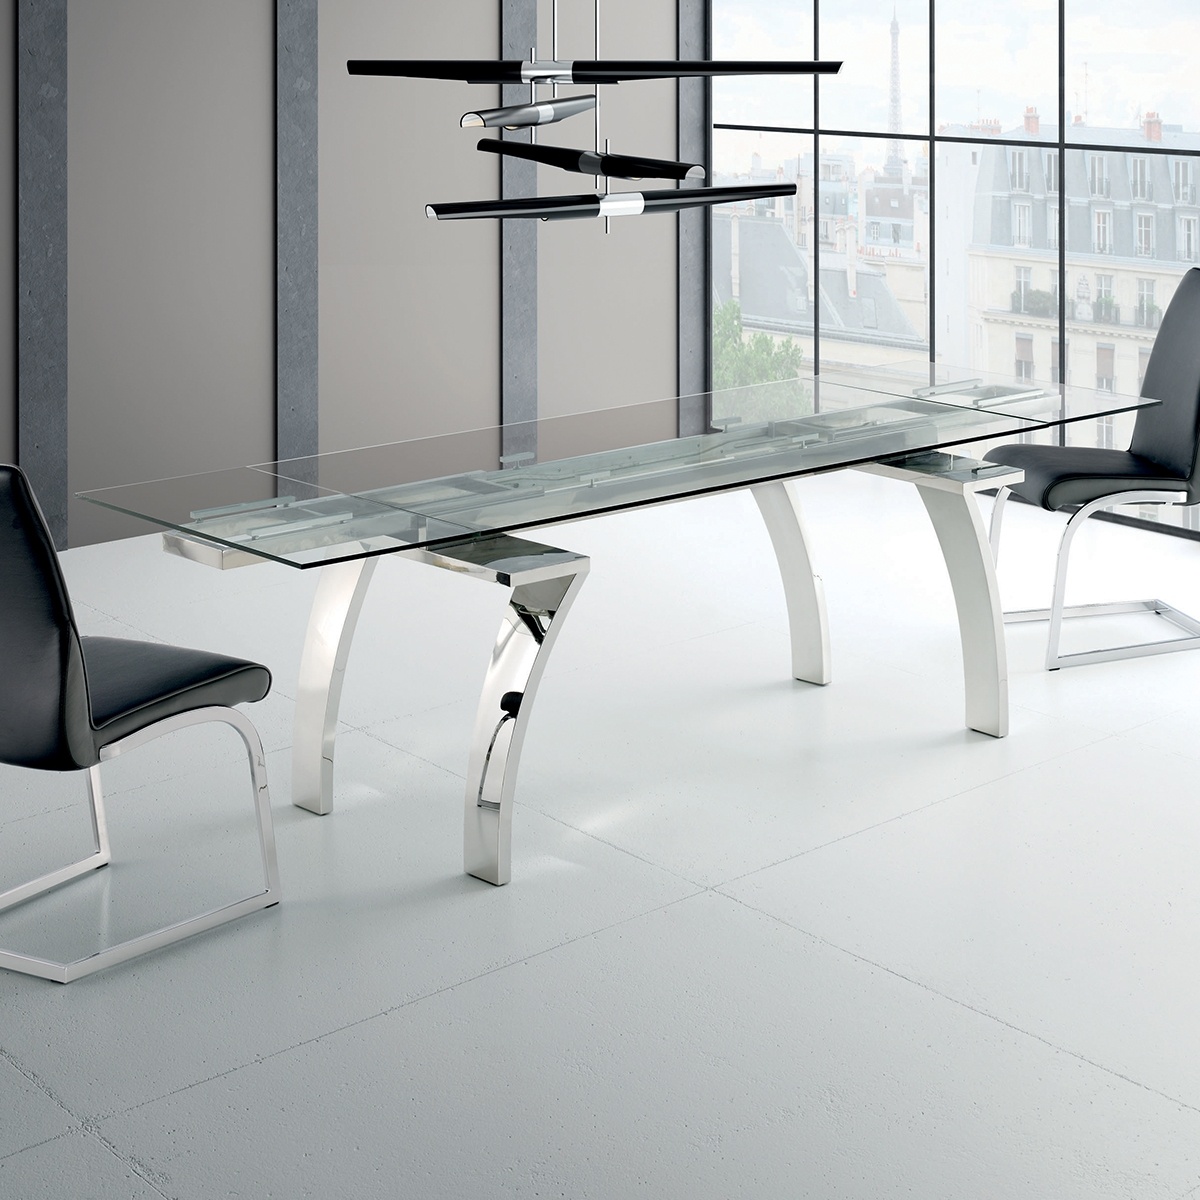 Table extensible avec rallonges int gr es seres zendart design - Table extensible rallonges integrees ...